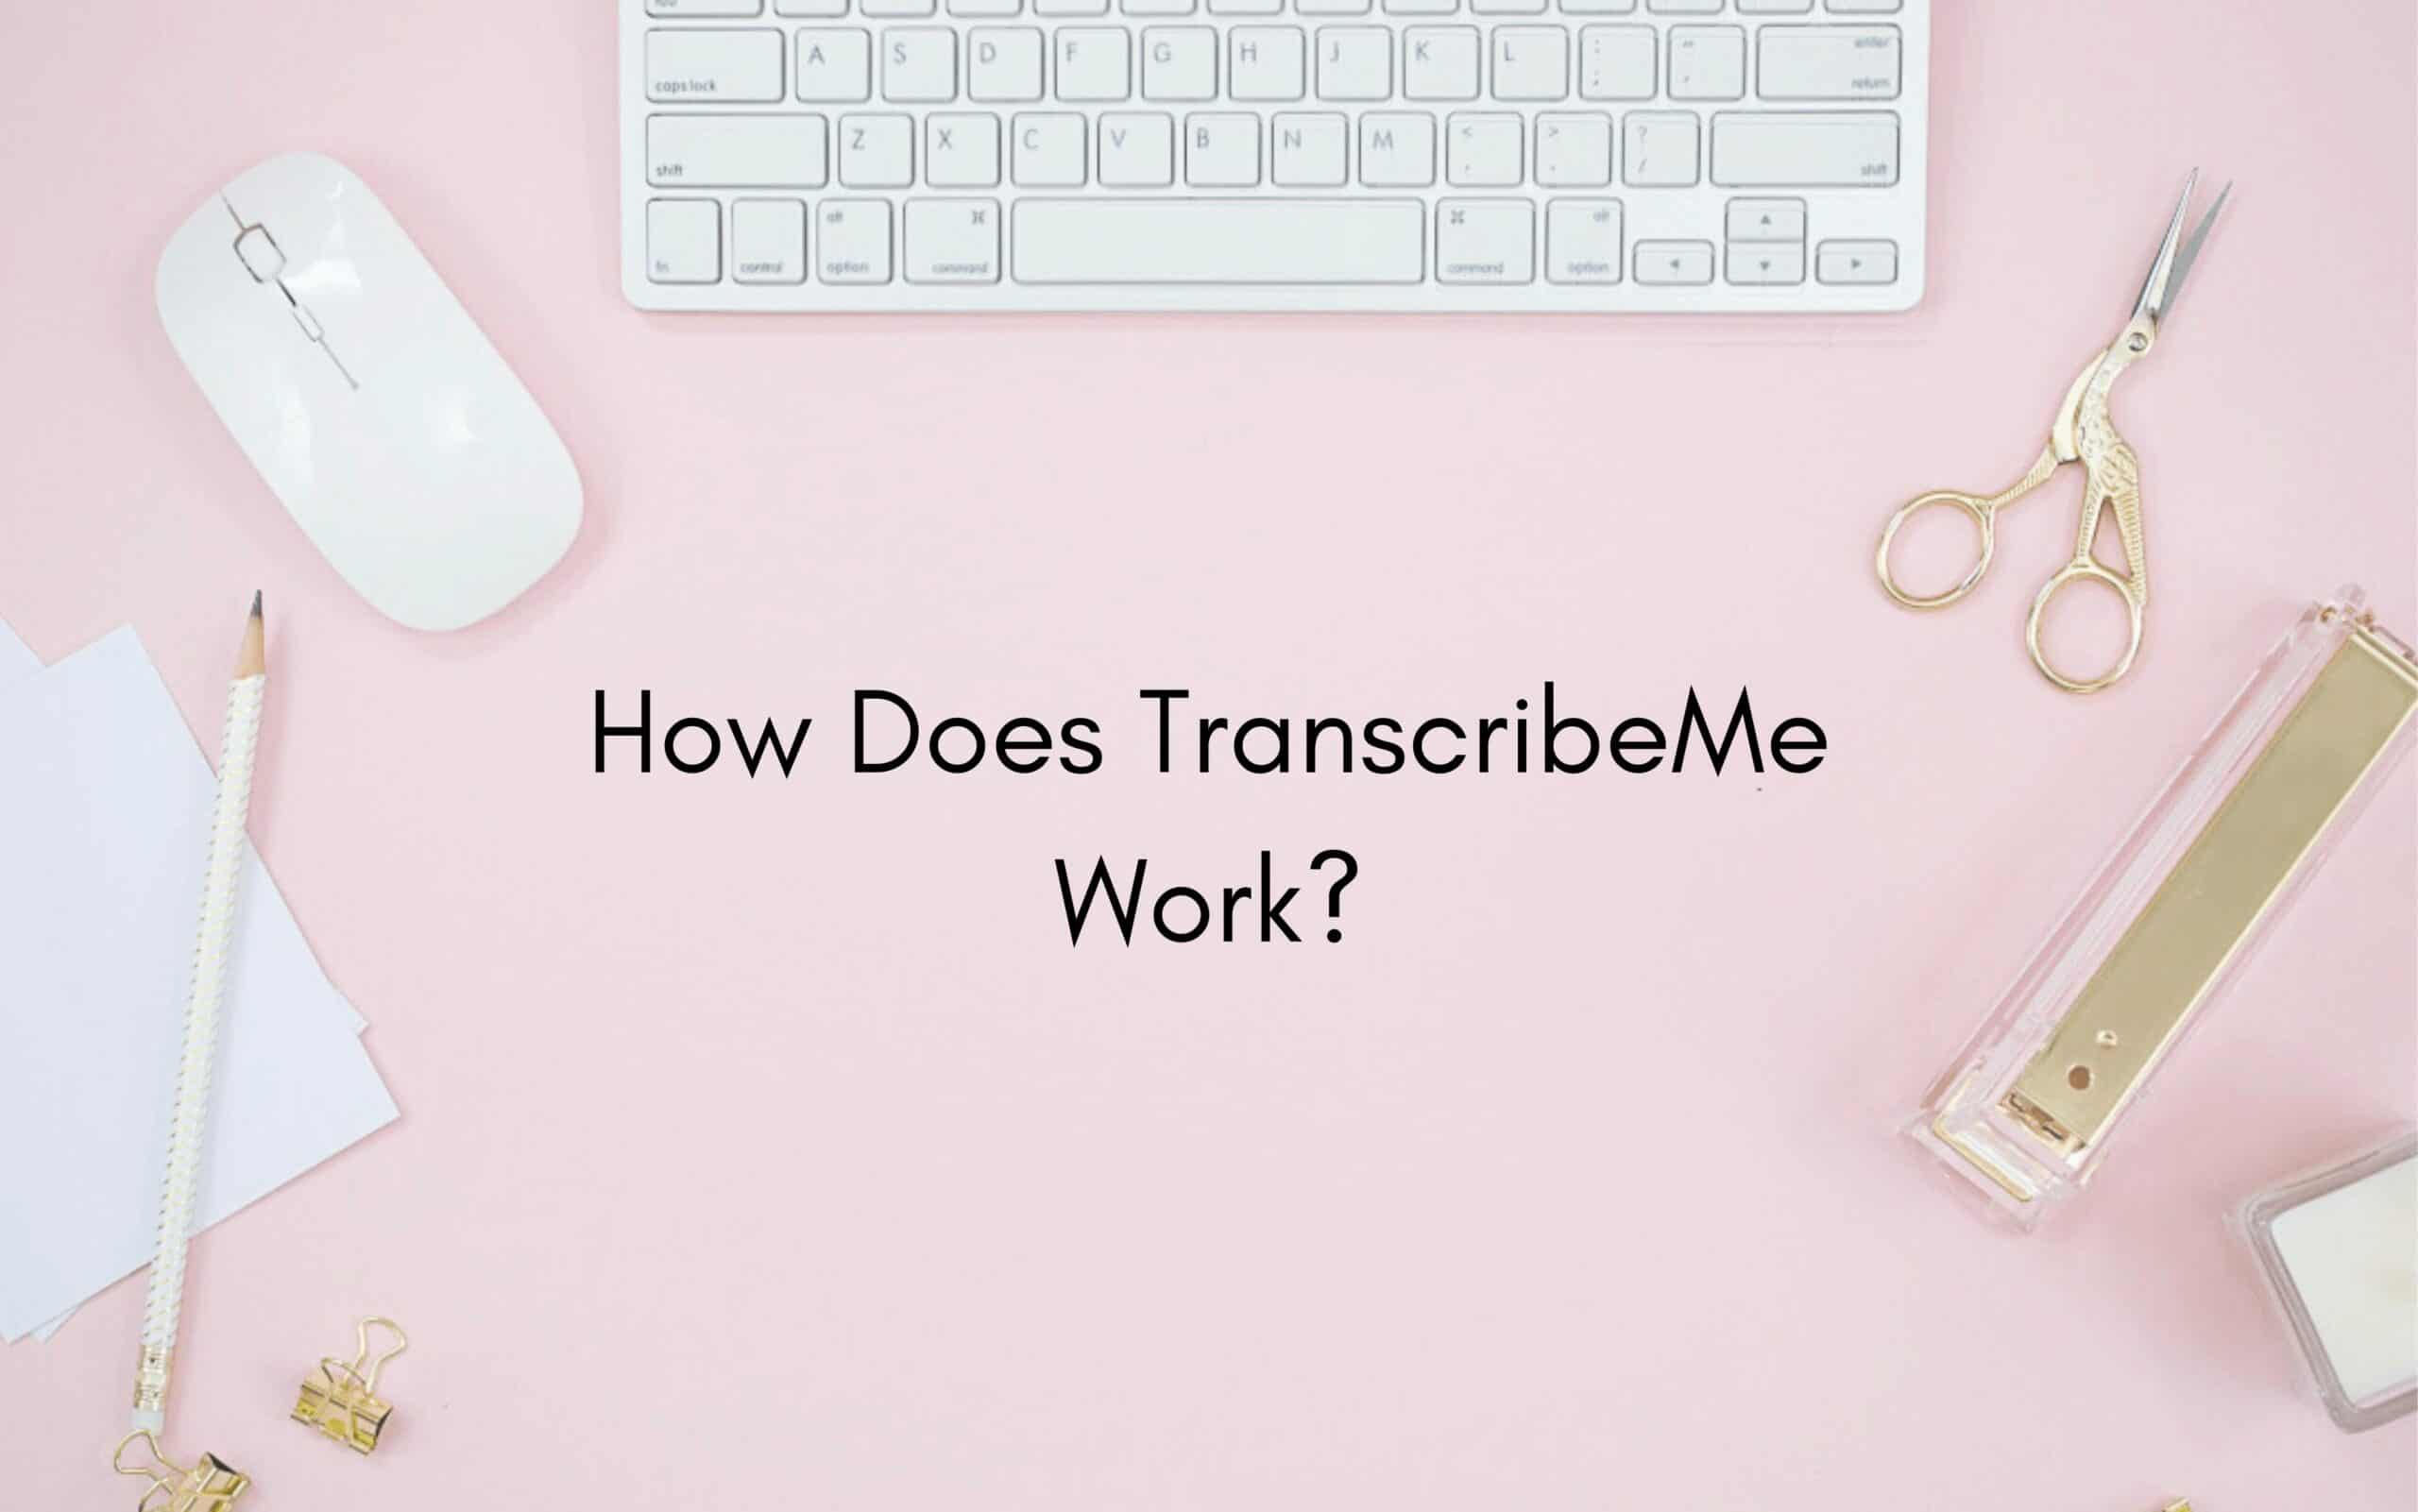 How Does TranscribeMe Work